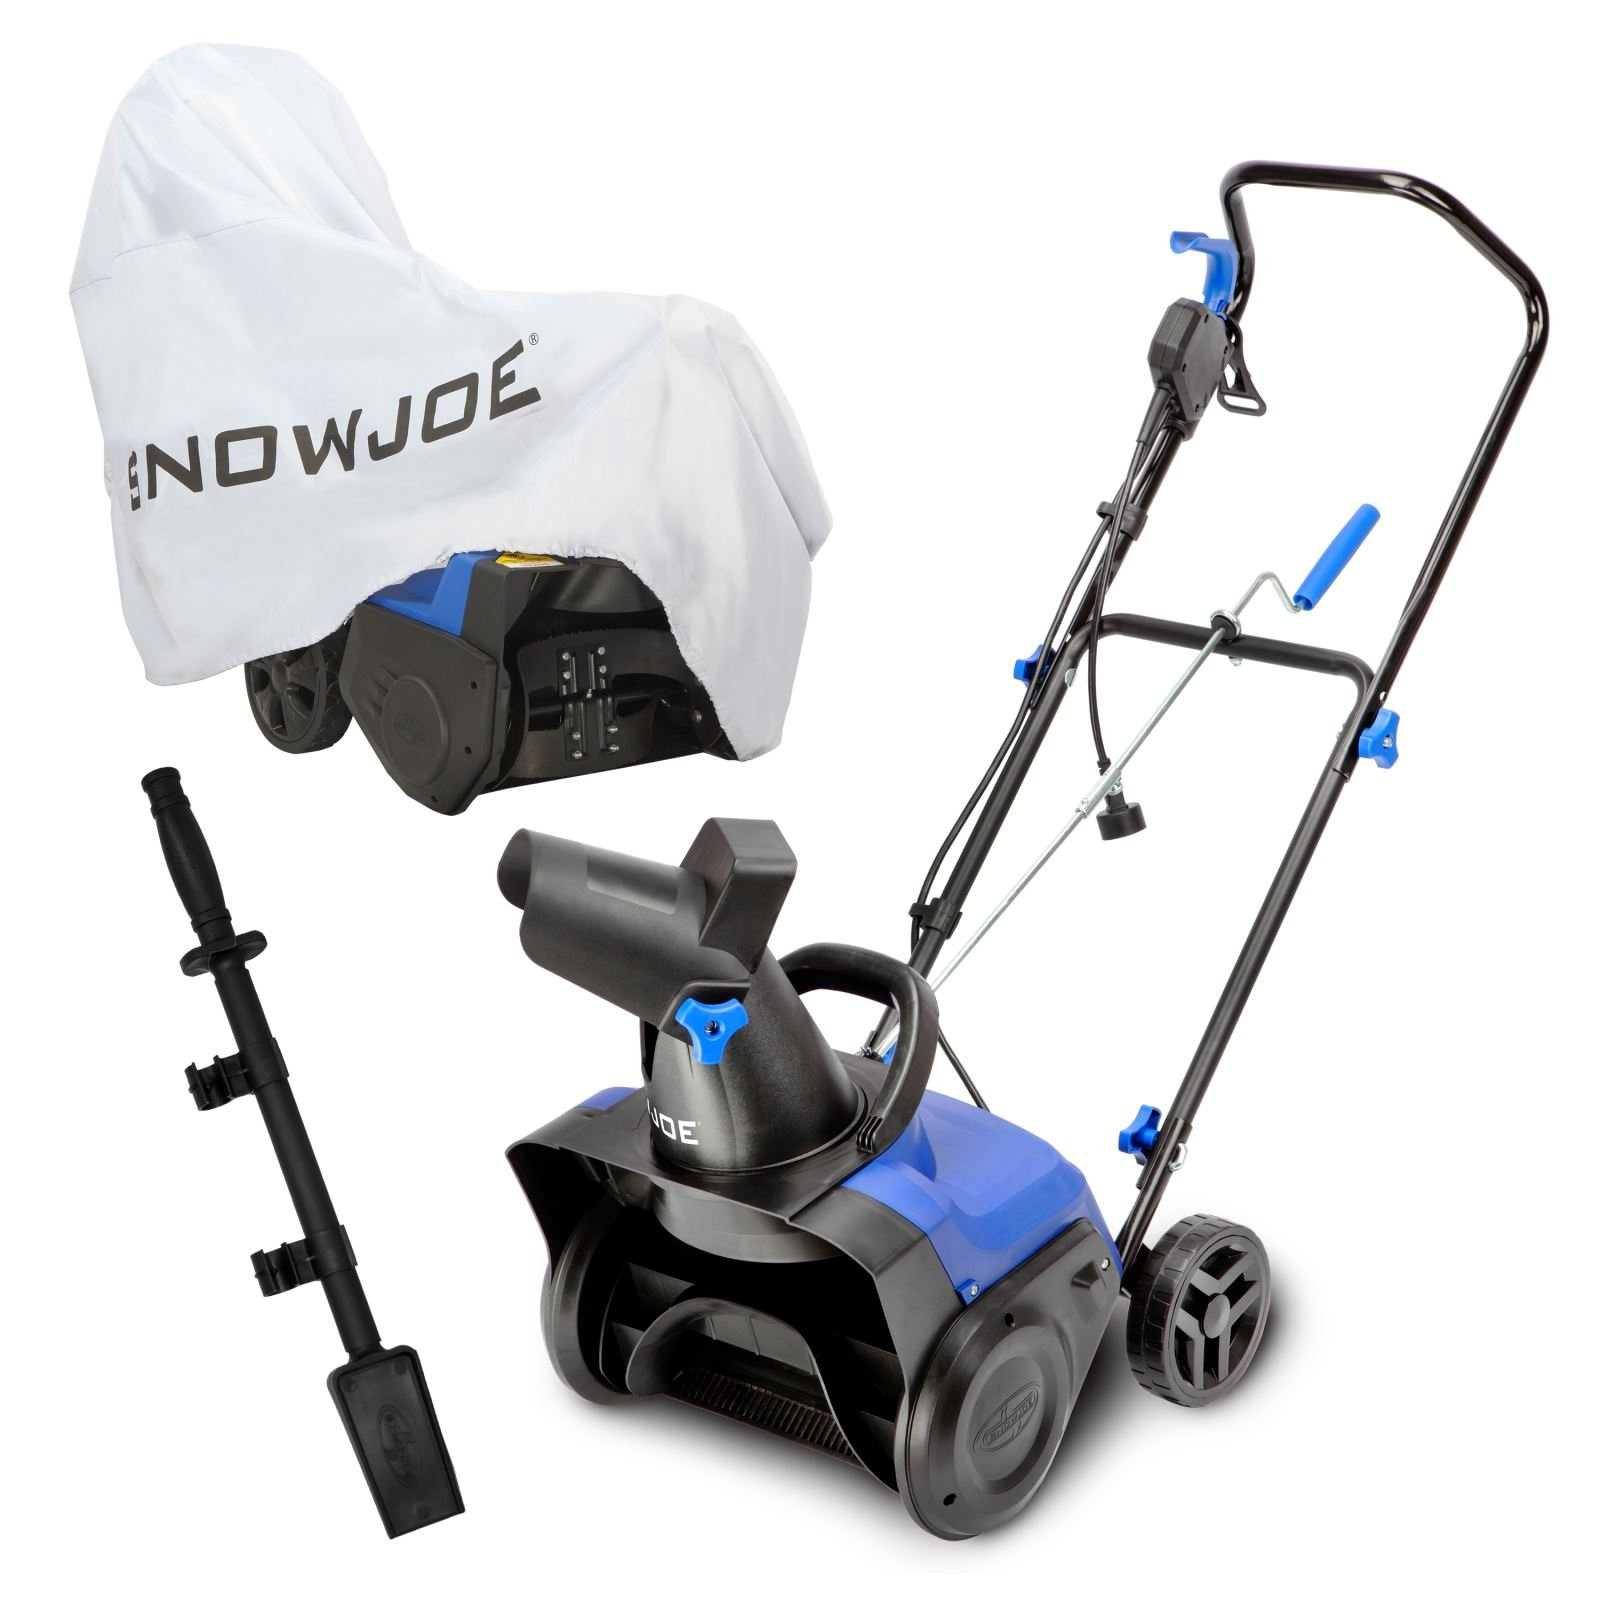 Snow Joe SJ615E-BDL Electric Single Stage Snow Blower Bundle 15-Inch · 11 Amp Motor Snow Blower · Cover · Clean-out Tool by Snow Joe